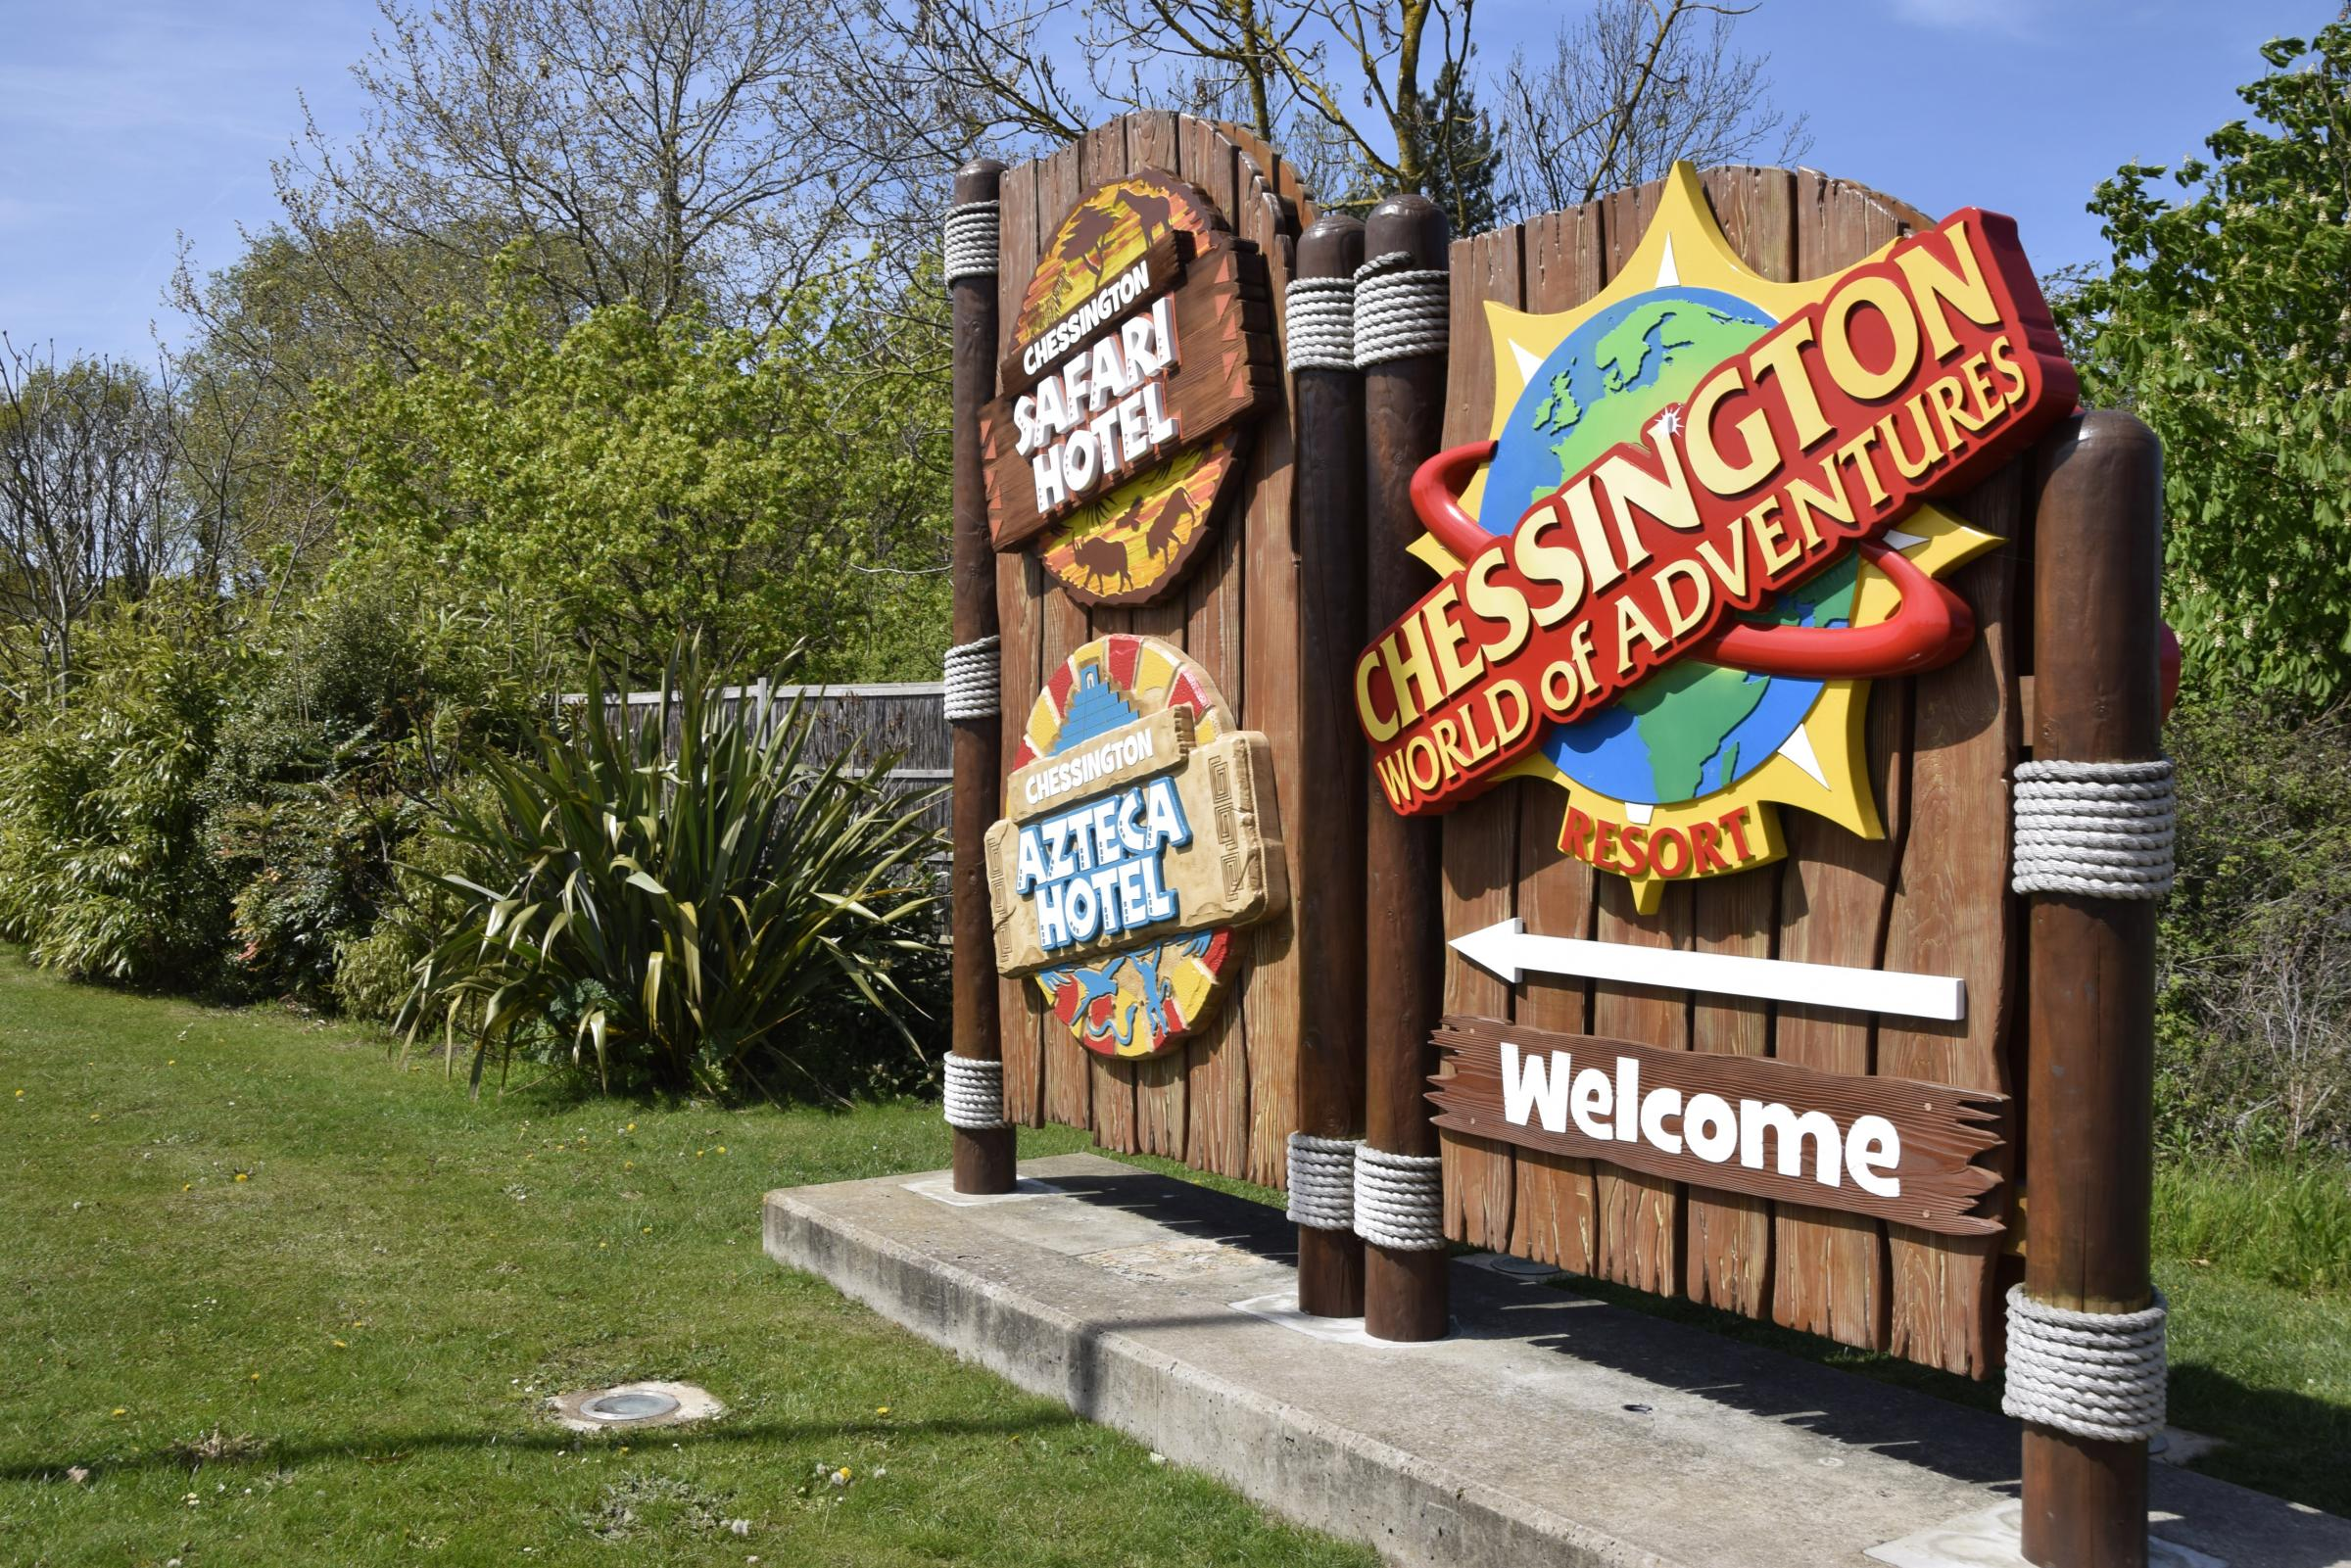 Chessington World of Adventures to launch new ride once the new season opens